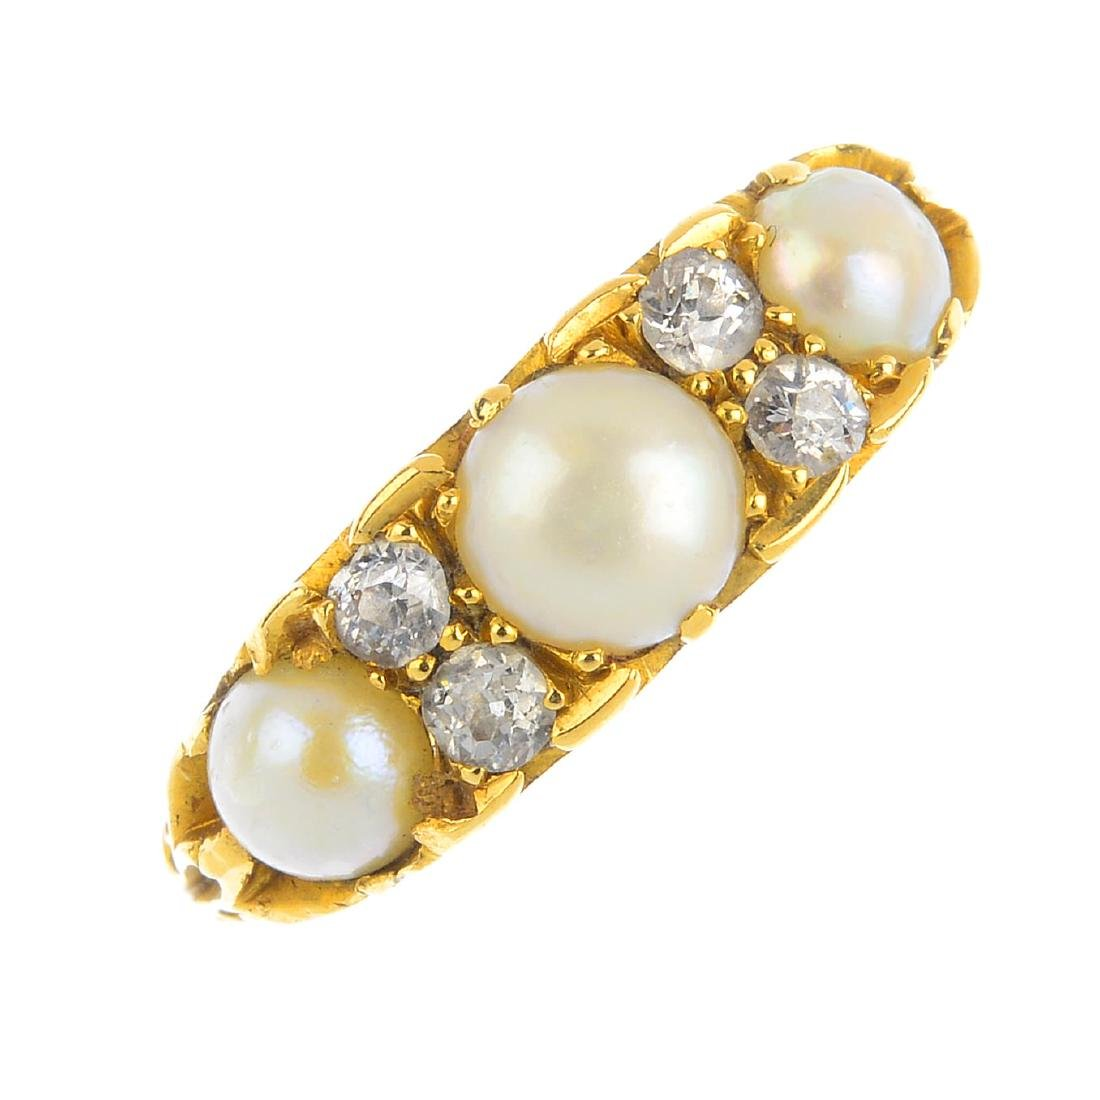 A late Victorian 18ct gold split pearl and diamond